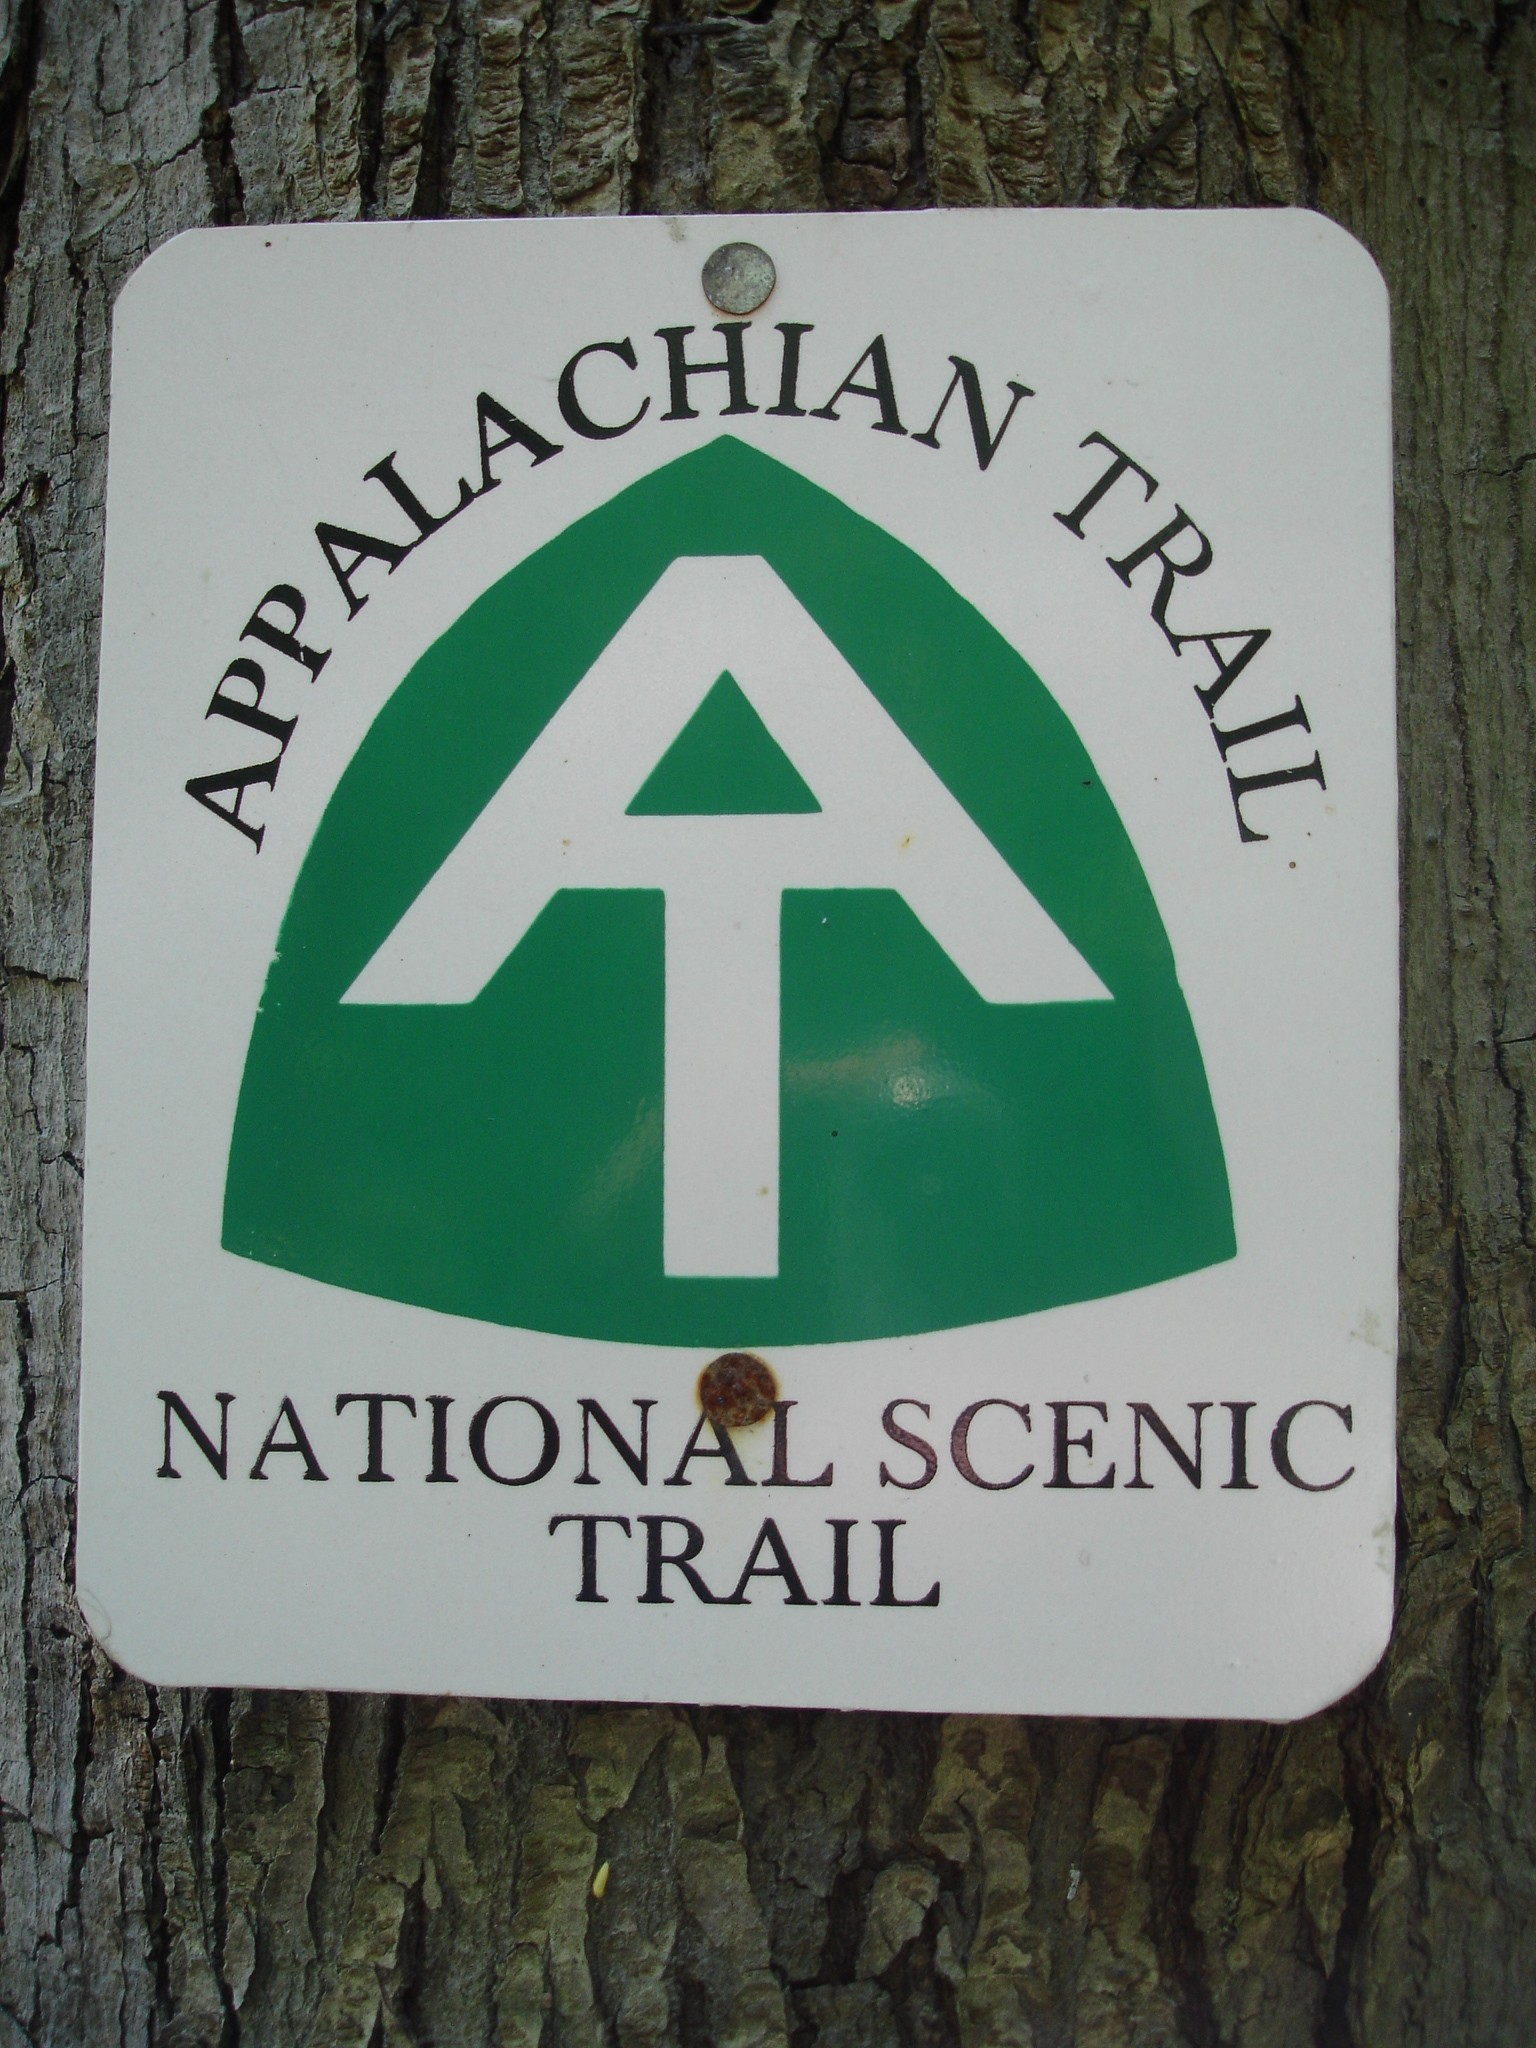 The Appalachian Trail.